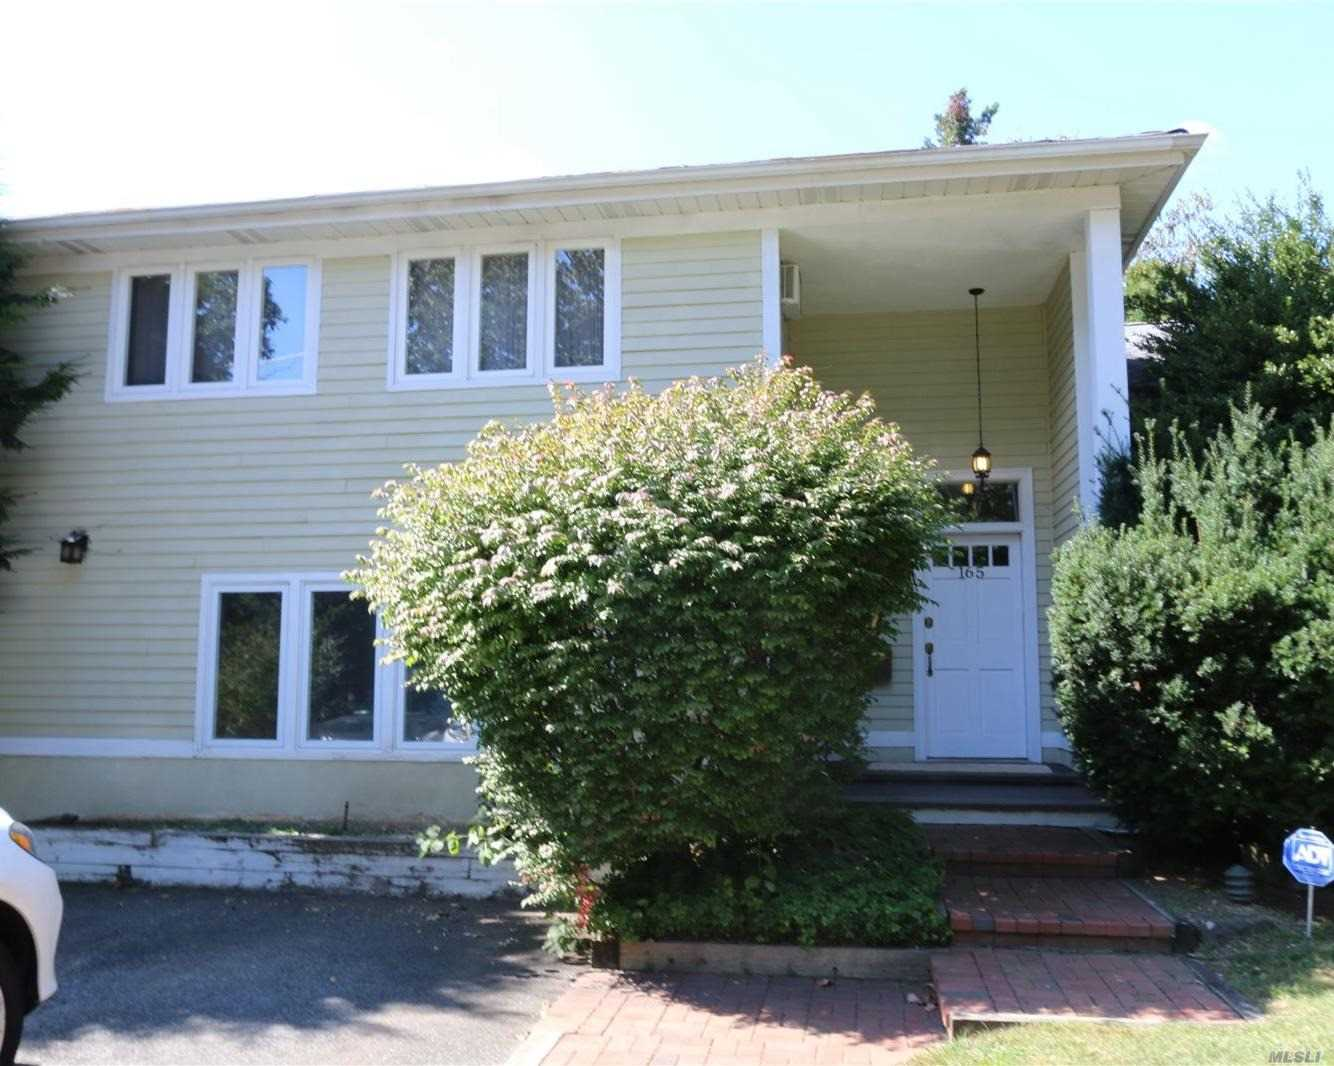 165 Cold Spring Rd - Syosset, New York